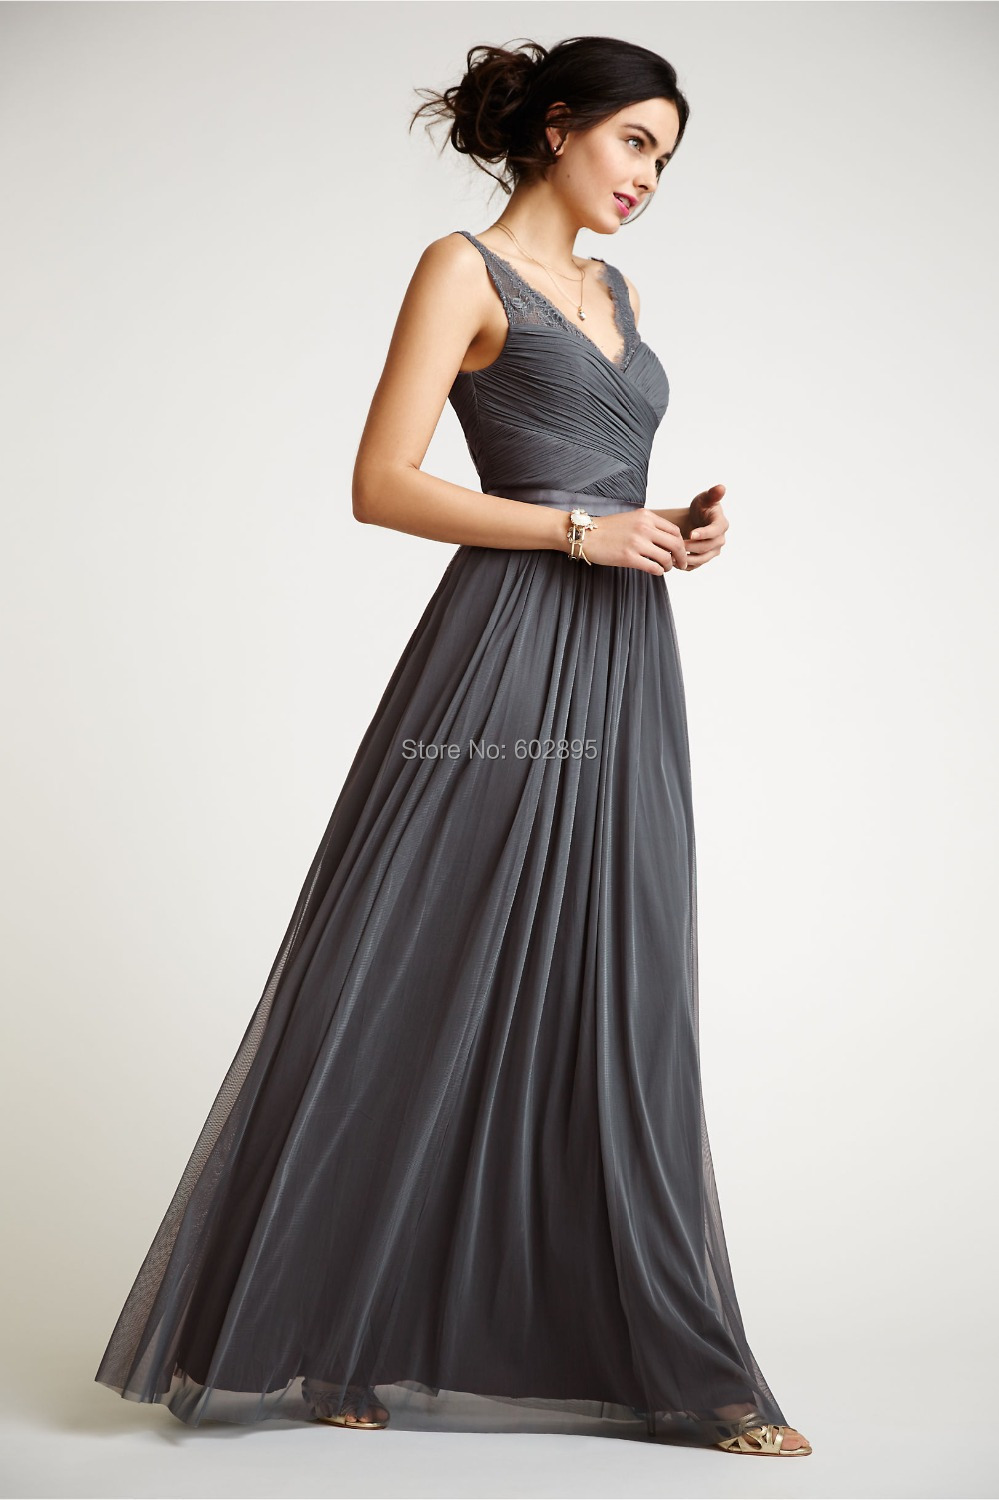 Elegant Pleated Chiffon Lace V Neck Dark Grey Bridesmaid